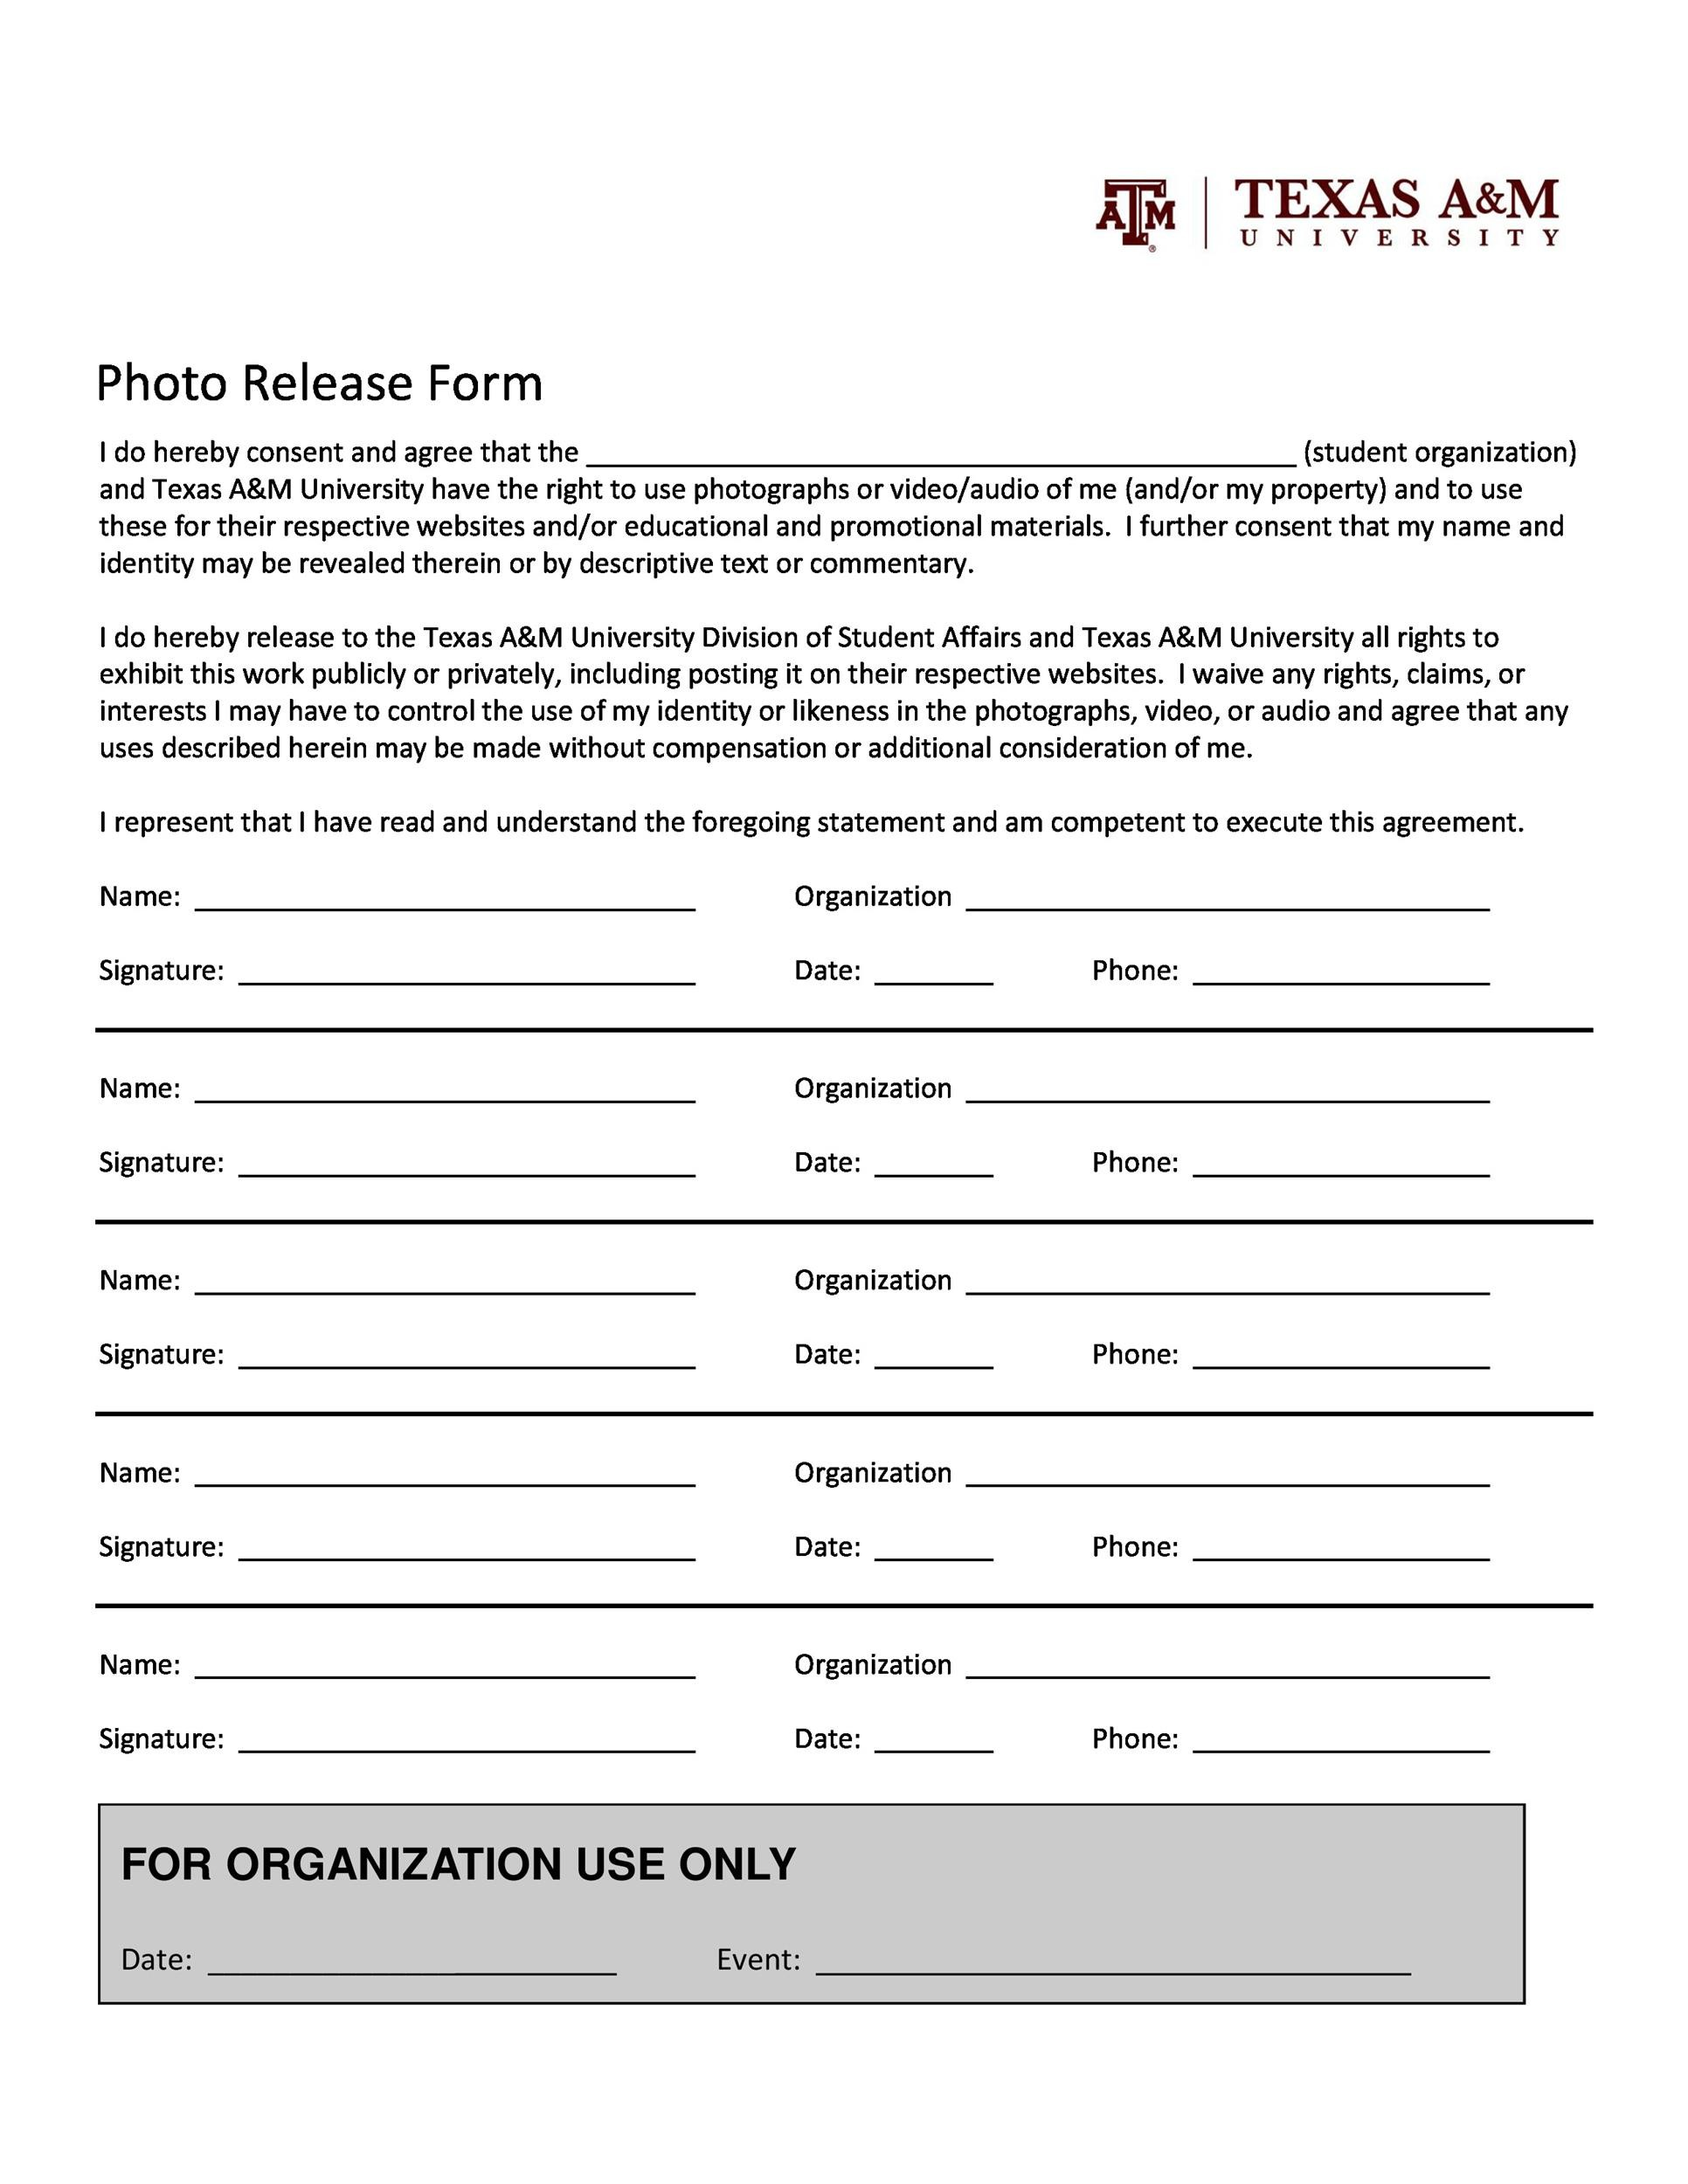 Photo Release Form Samples